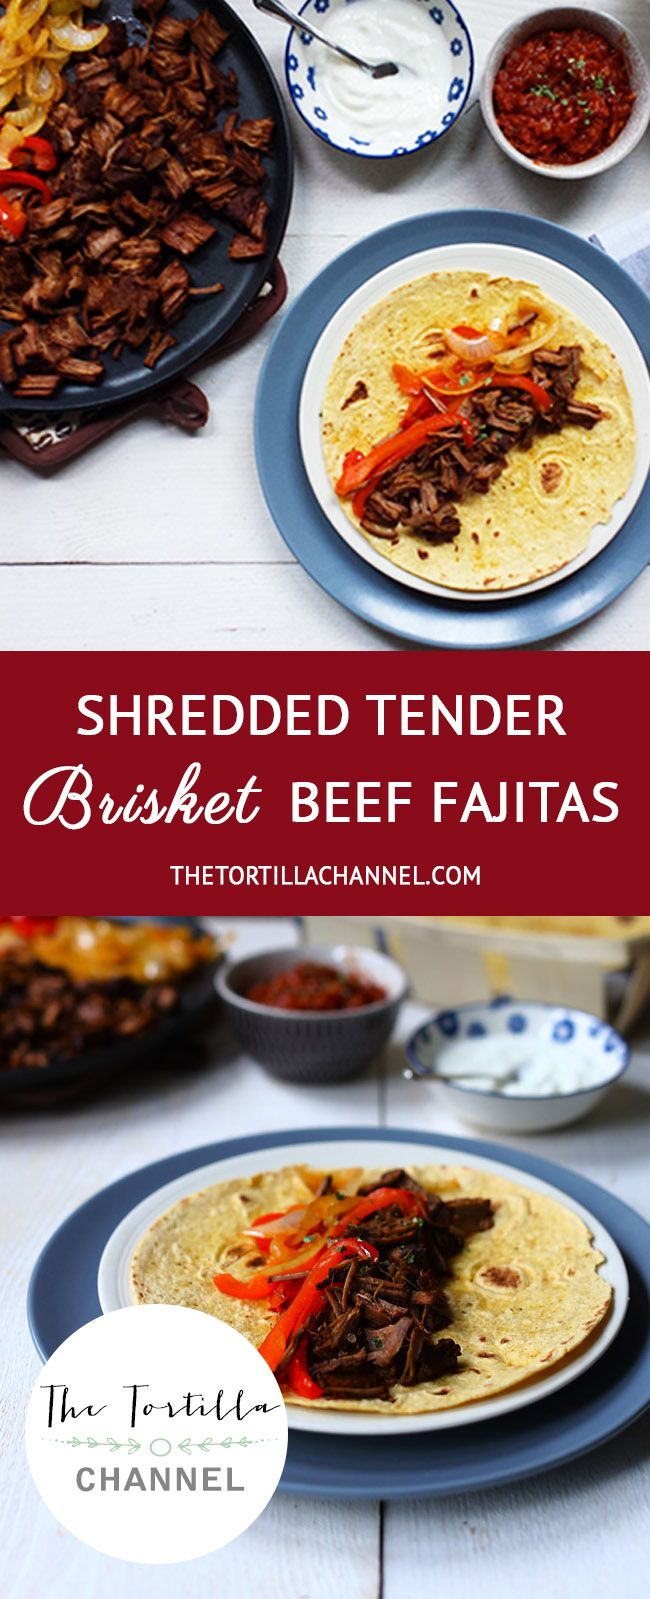 To honour the fajitas on national fajitas day we are making shredded tender brisket beef fajitas. It is slow cooked to make it tender. #fajitasday #thetortillachannel